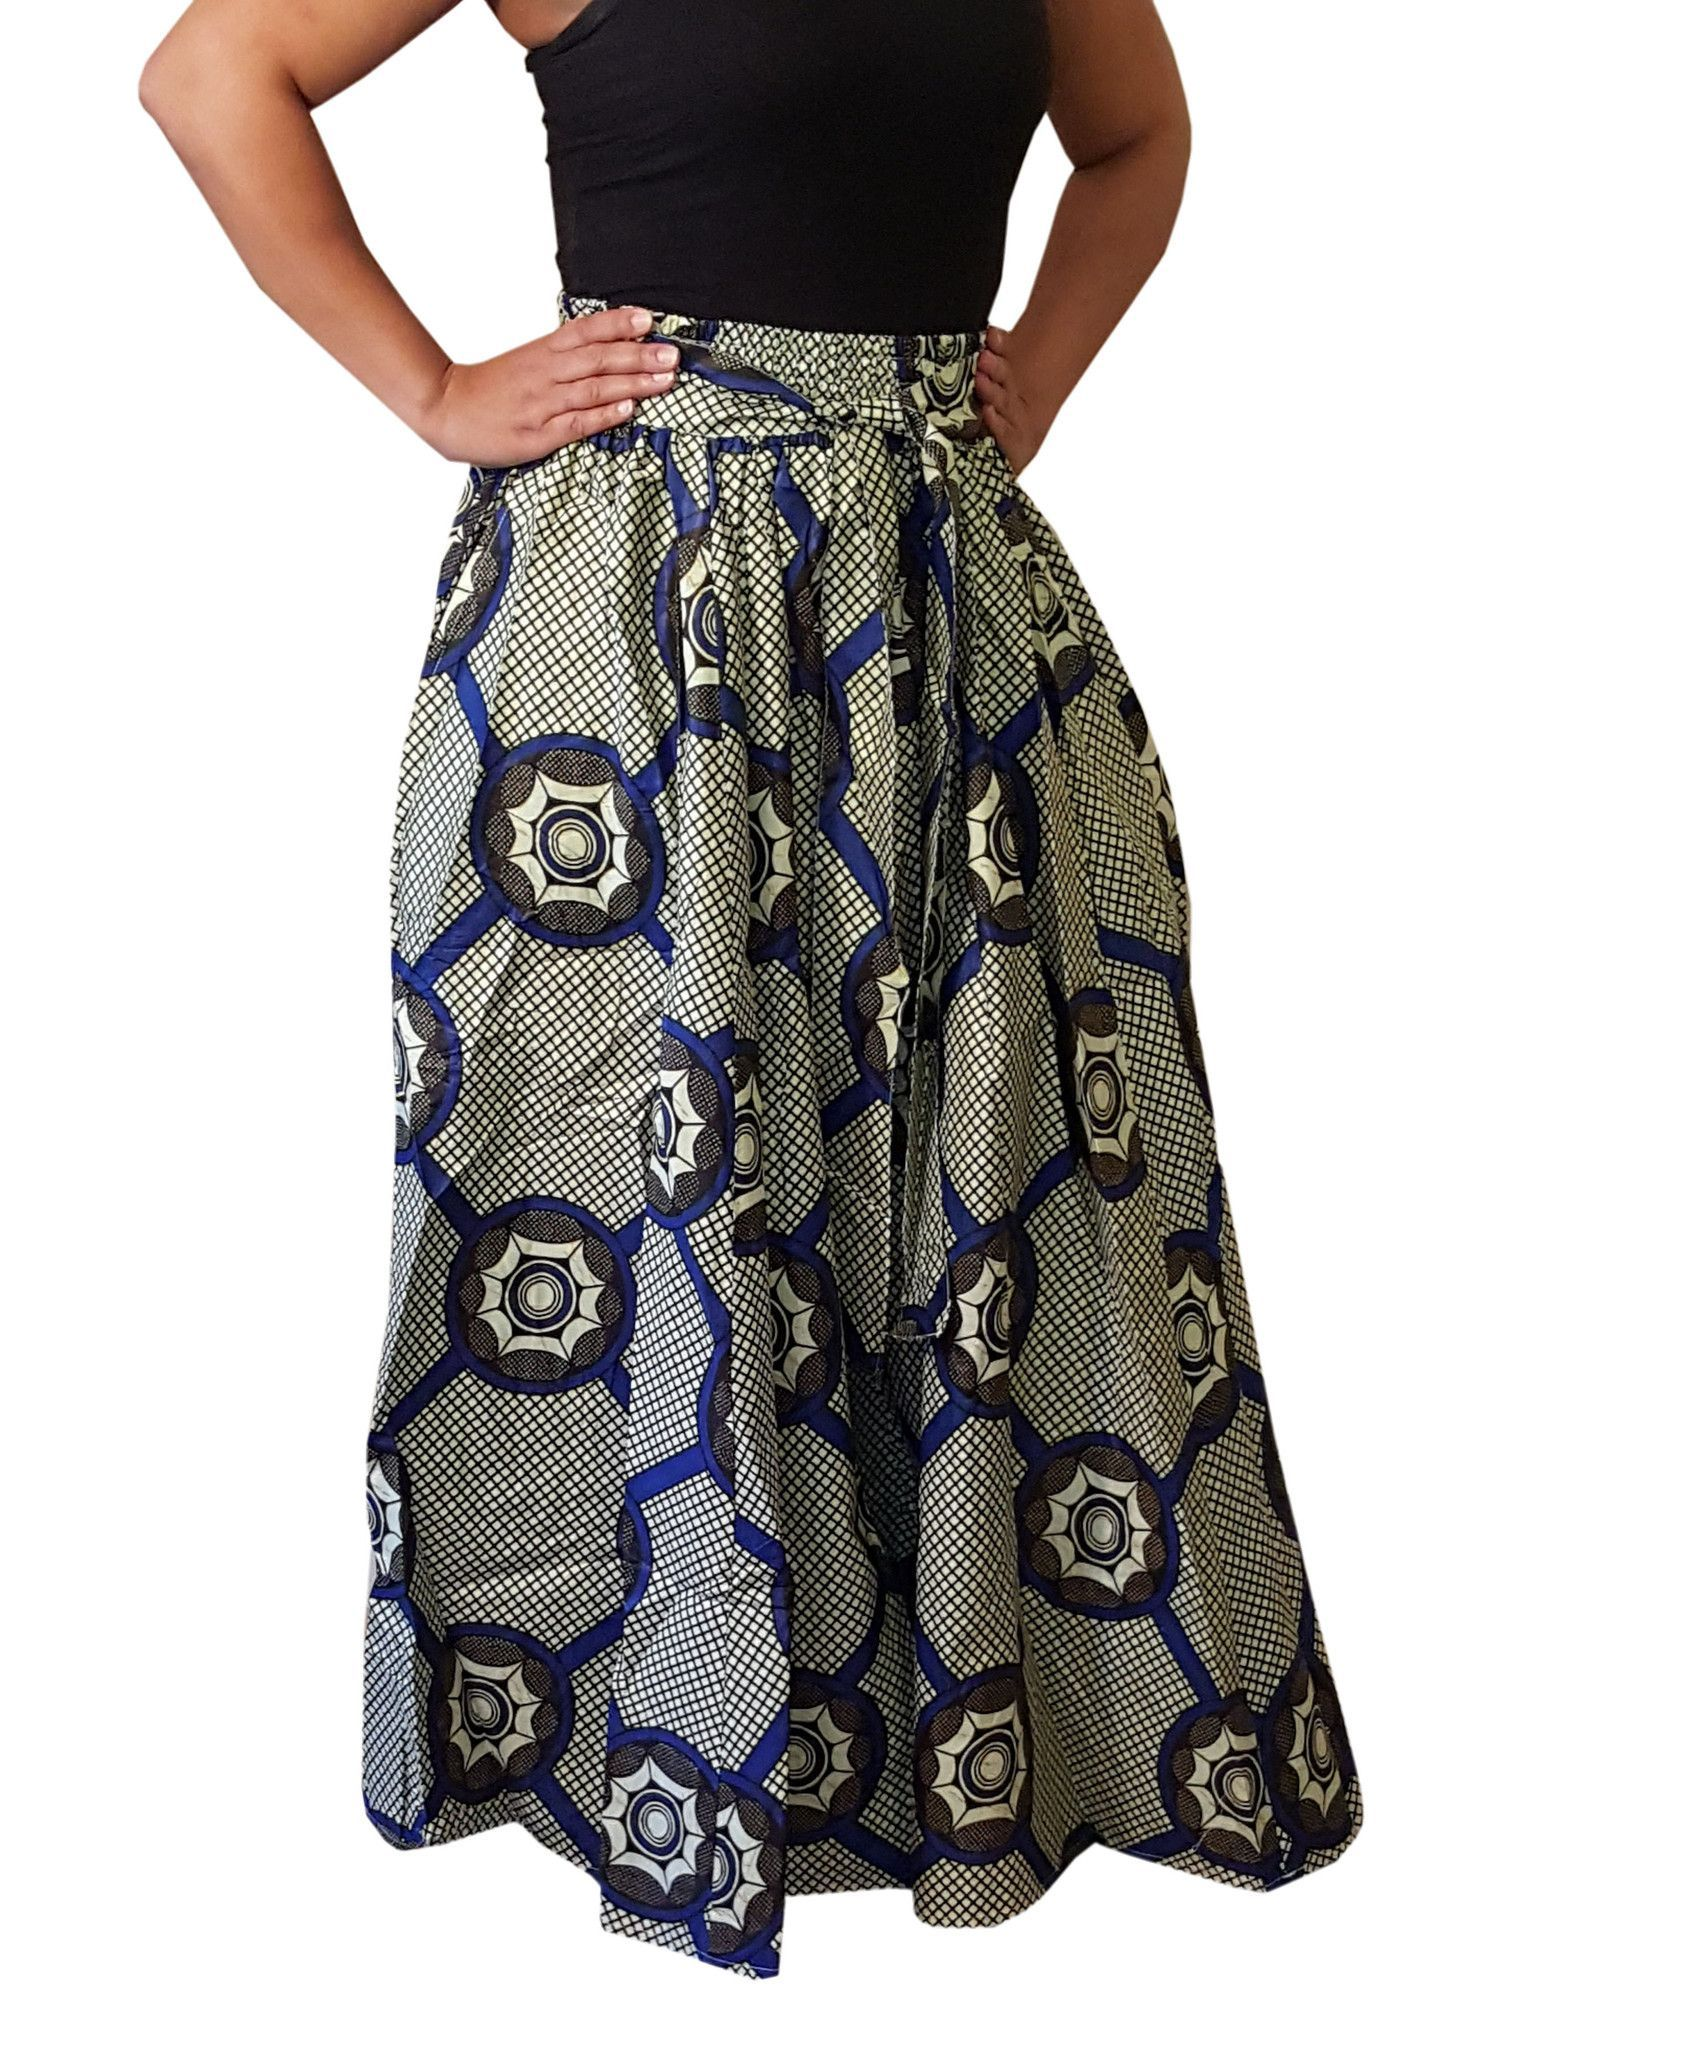 Krawattenrock Sabe 4 Panel Blue White Bow Tie Skirt Products Pinterest